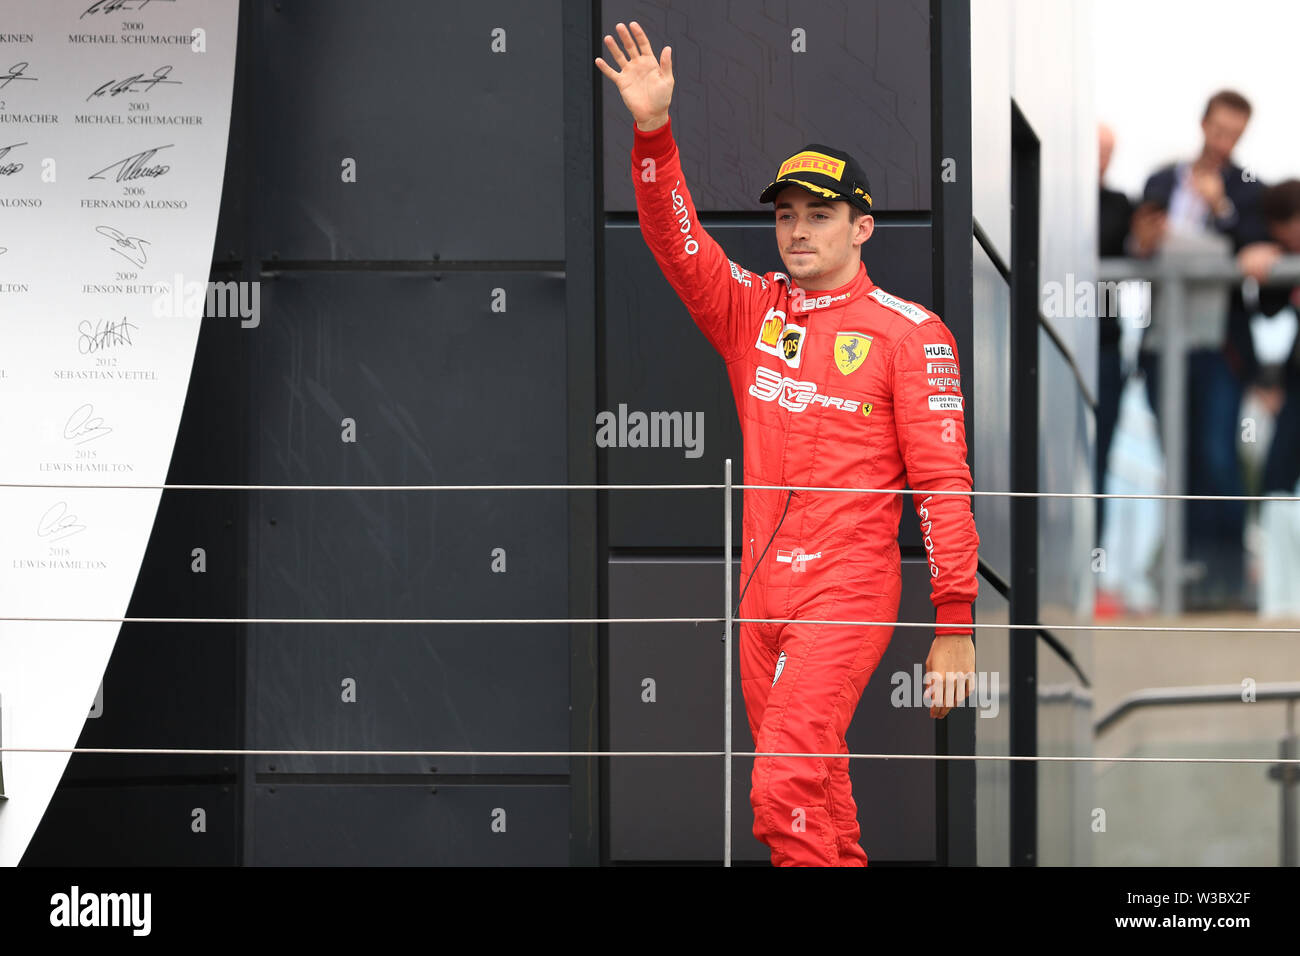 Silverstone, UK. 14th July 2019. FIA F1 Grand Prix of Britain, Race Day; Scuderia Ferrari, Charles Leclerc on the podium Credit: Action Plus Sports Images/Alamy Live News Stock Photo